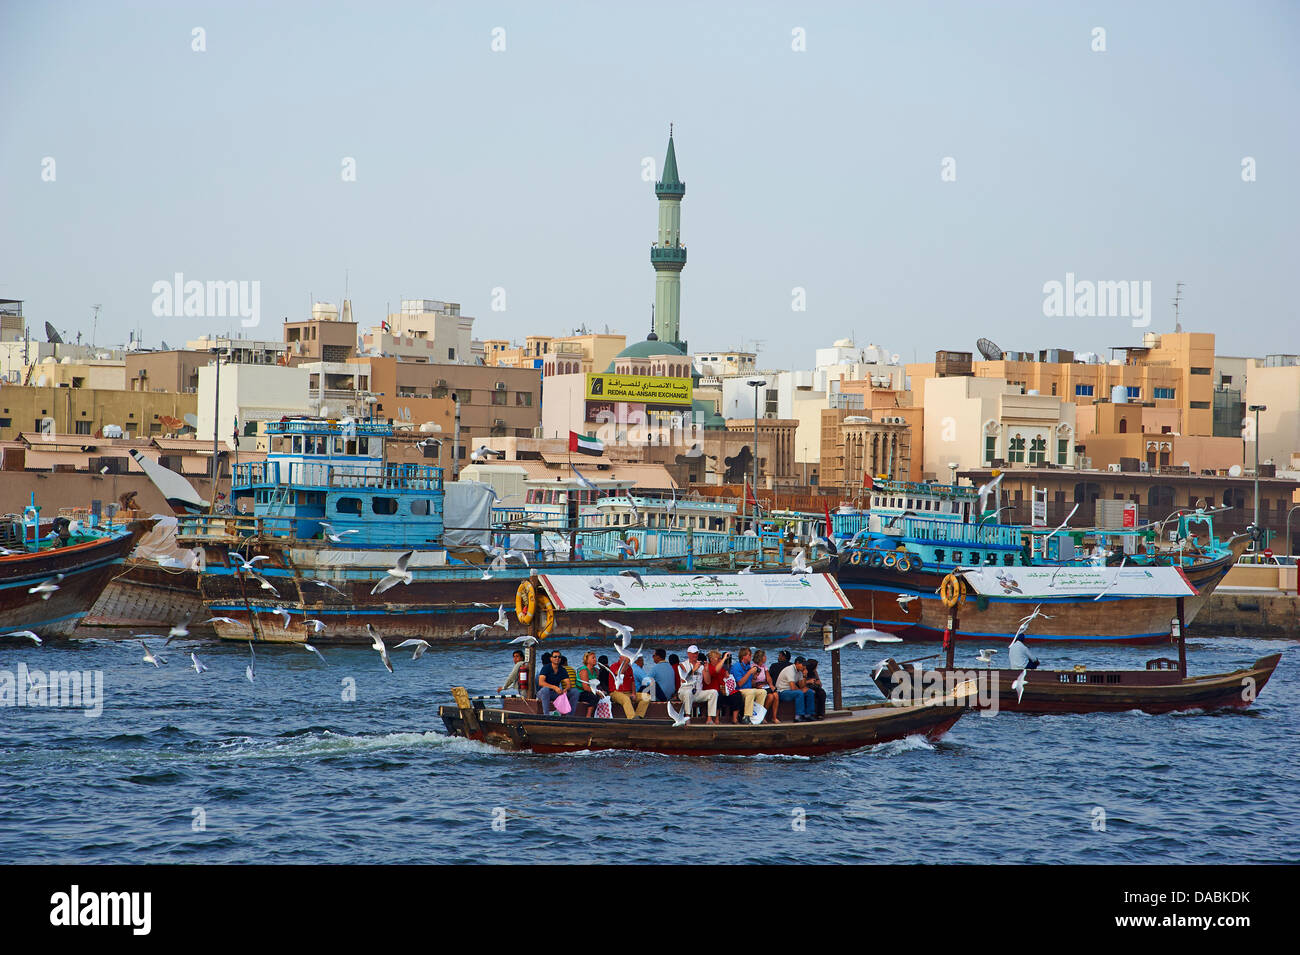 Deira neighbourhood, Dubai, United Arab Emirates, Middle East - Stock Image